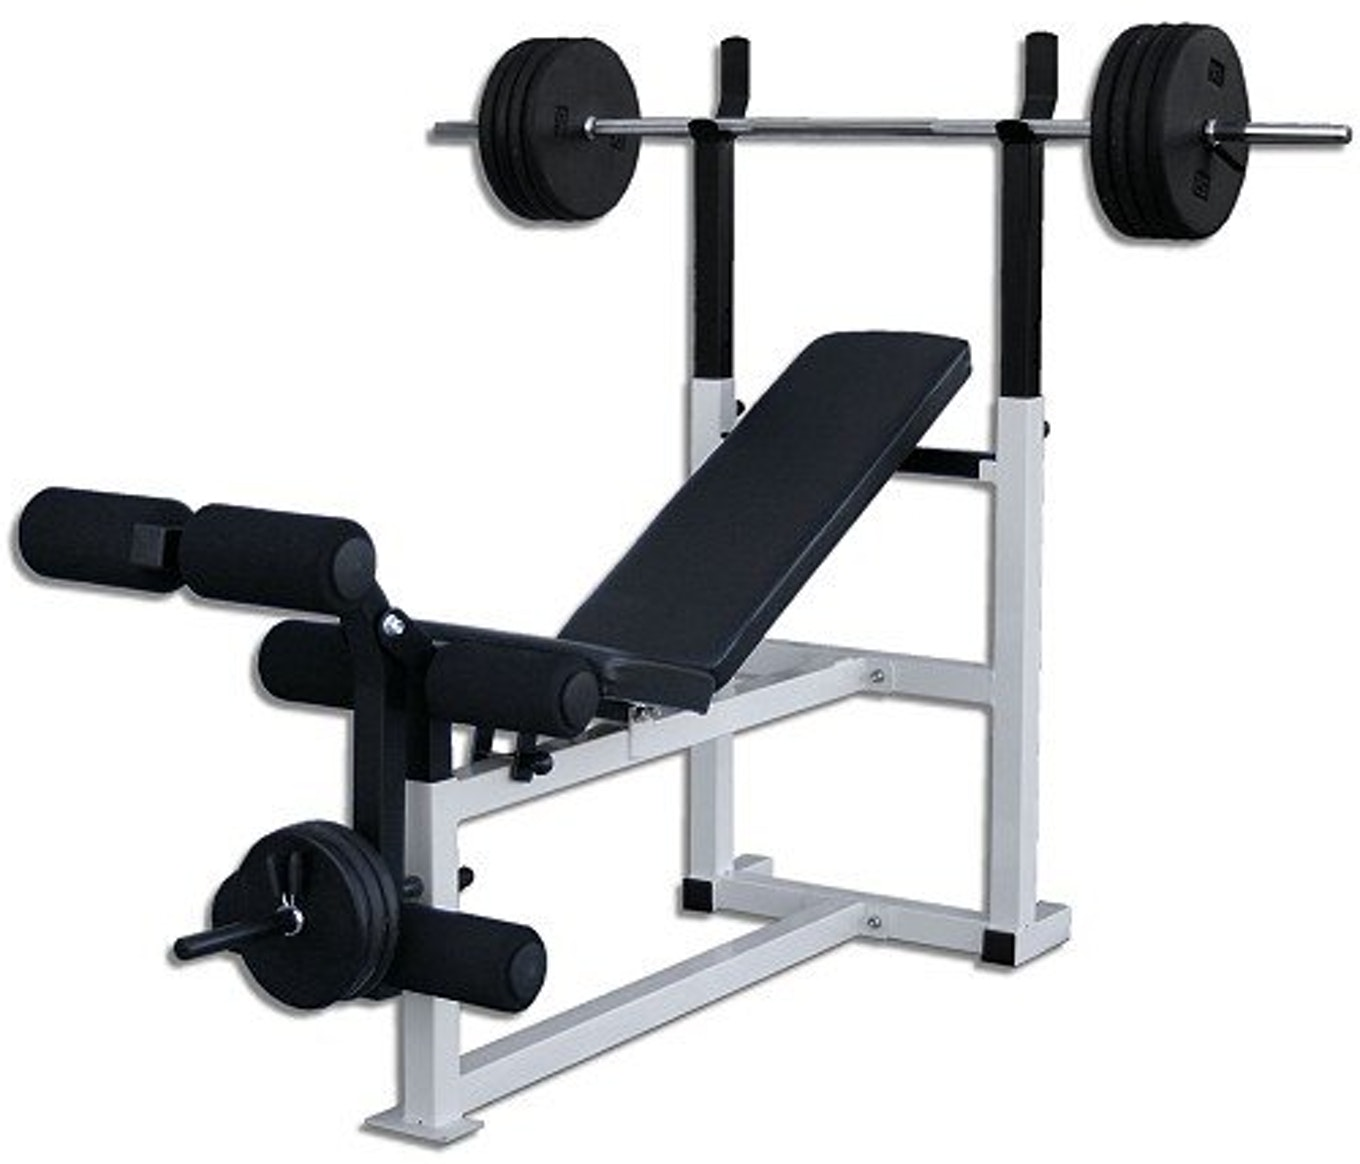 Craigslist Weight Bench | Iron Grip Strength Weight Bench | Weight Bench Sets for Sale